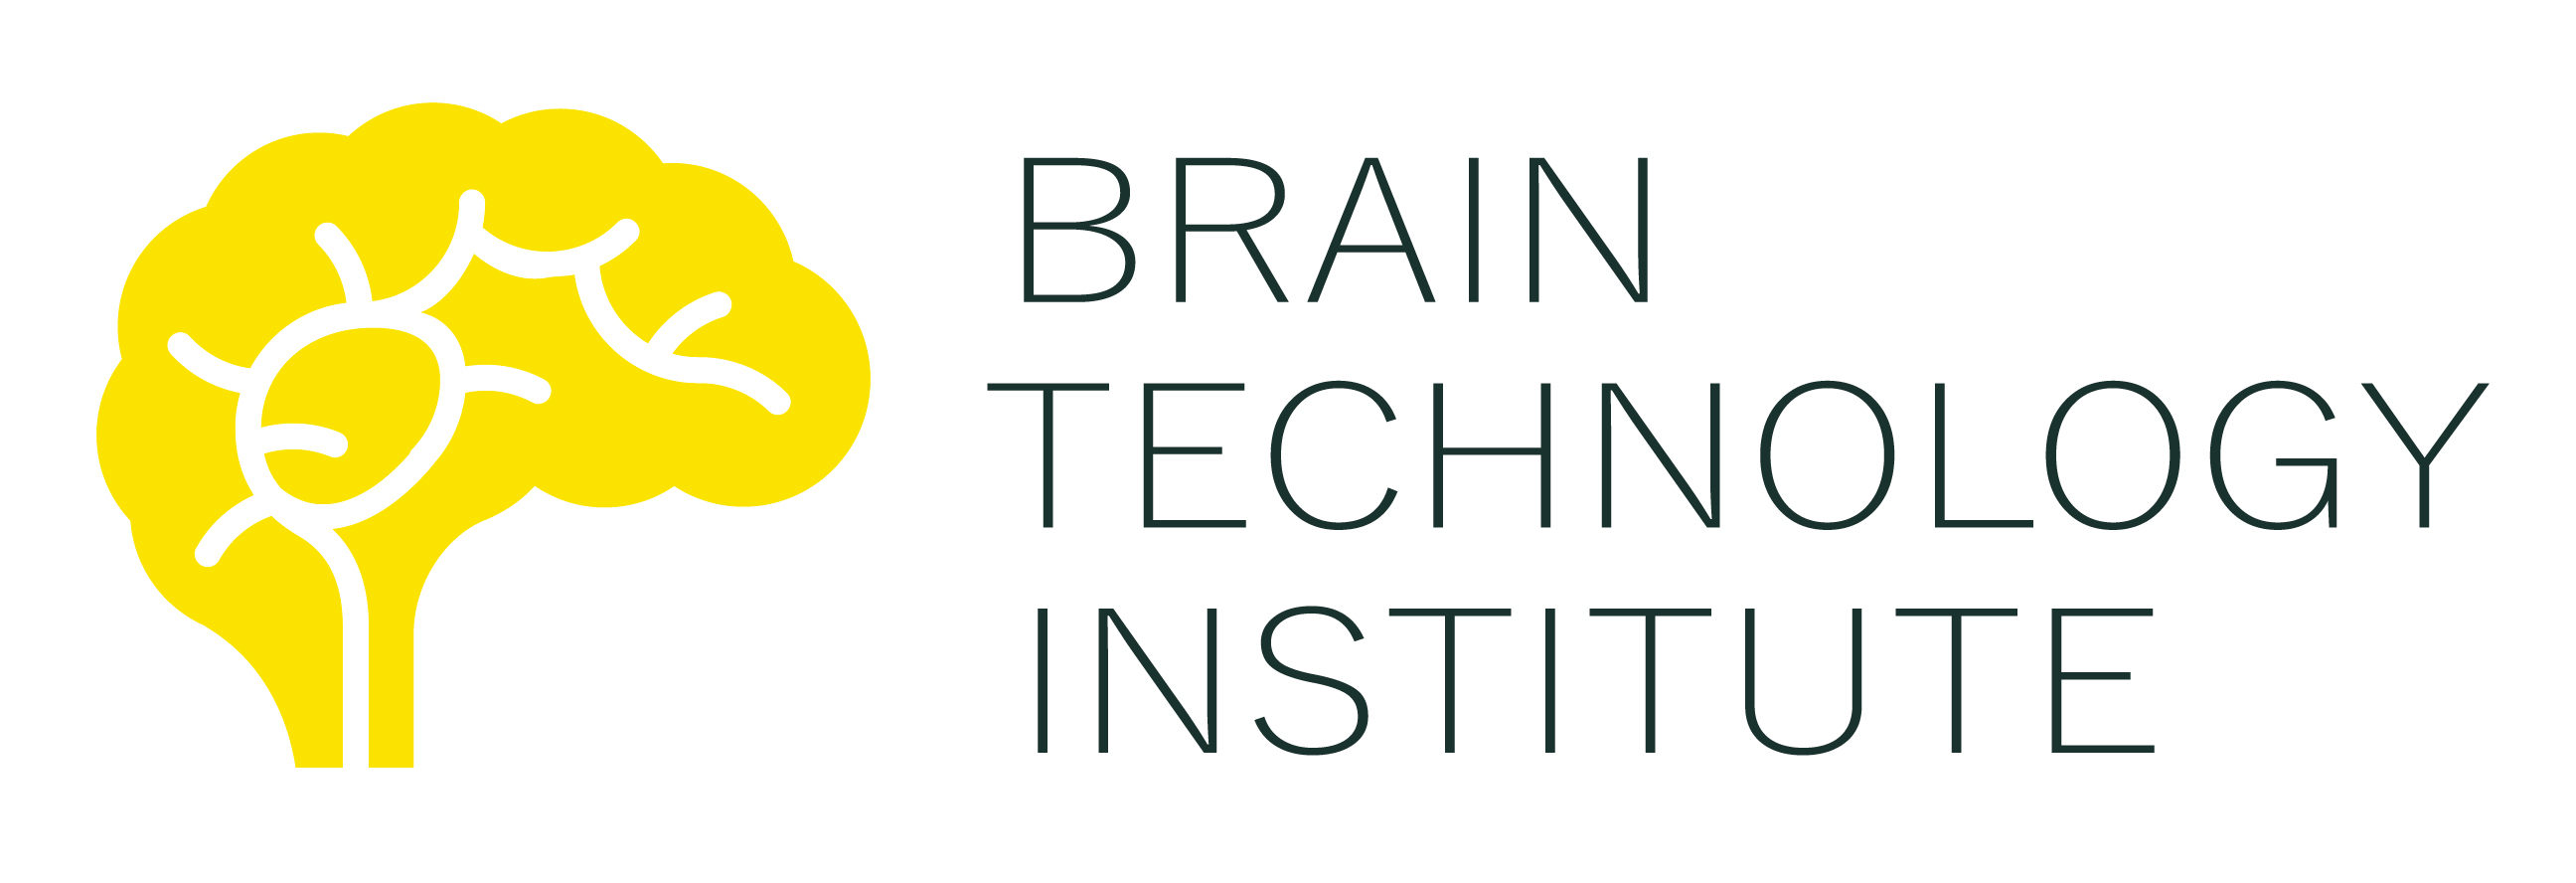 Stichting Brain Technology Institute (BTI)